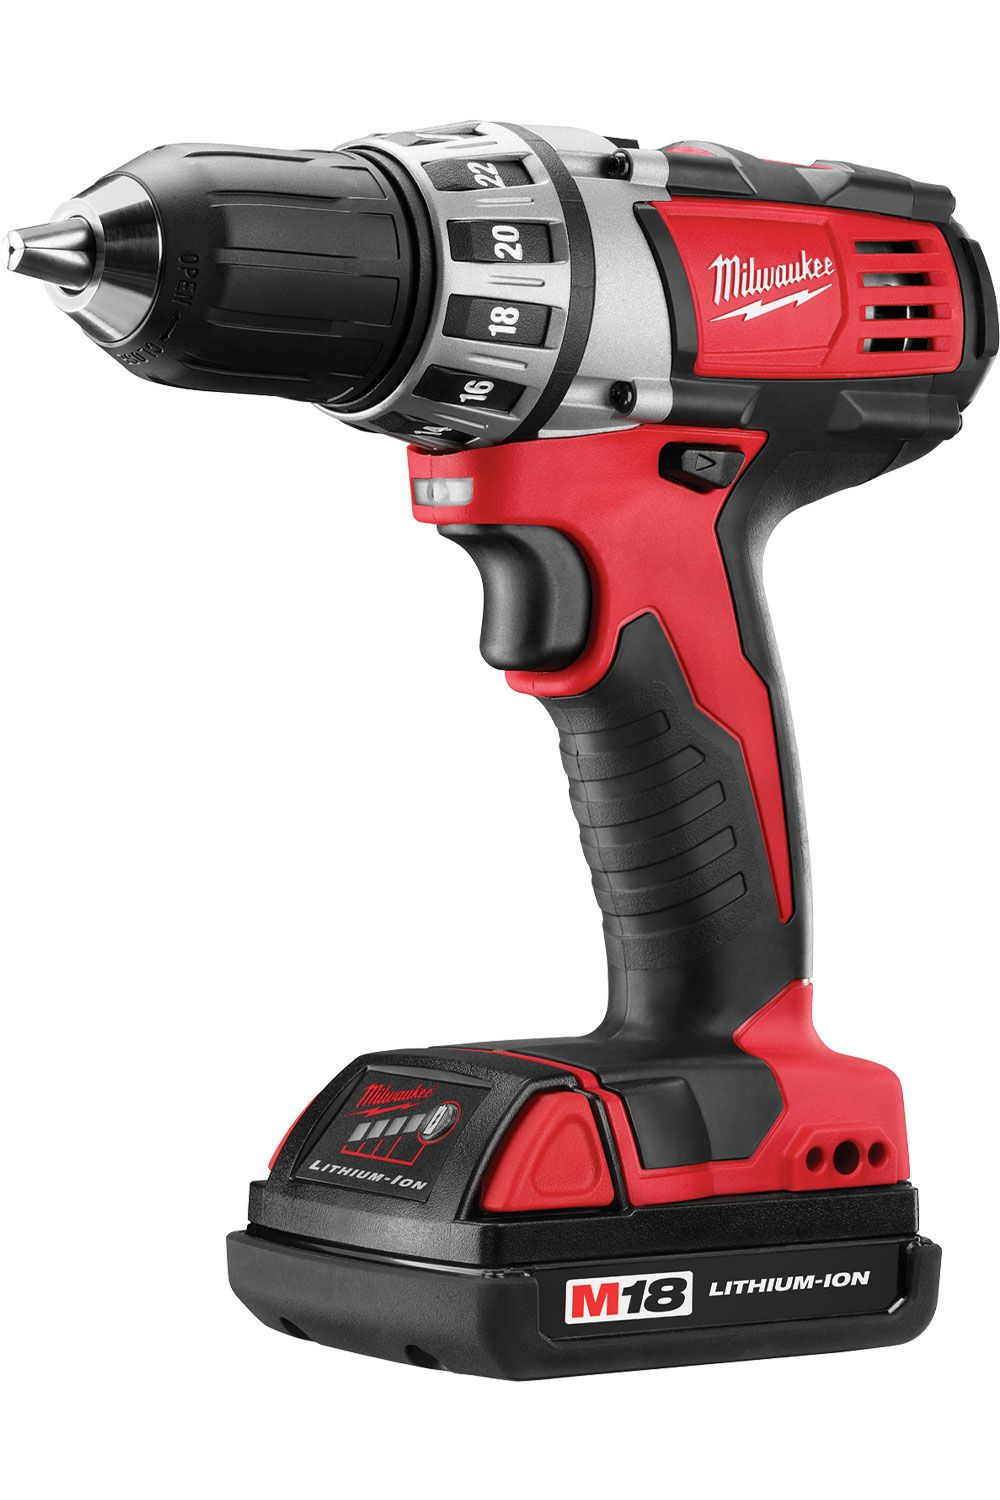 The Powerful 18v Compact Lithium Ion Drill Driver Drives Up To 2 Times More Screws In A Single Charge 4 Pole Frameless Motor Drill Cordless Drill Drill Driver